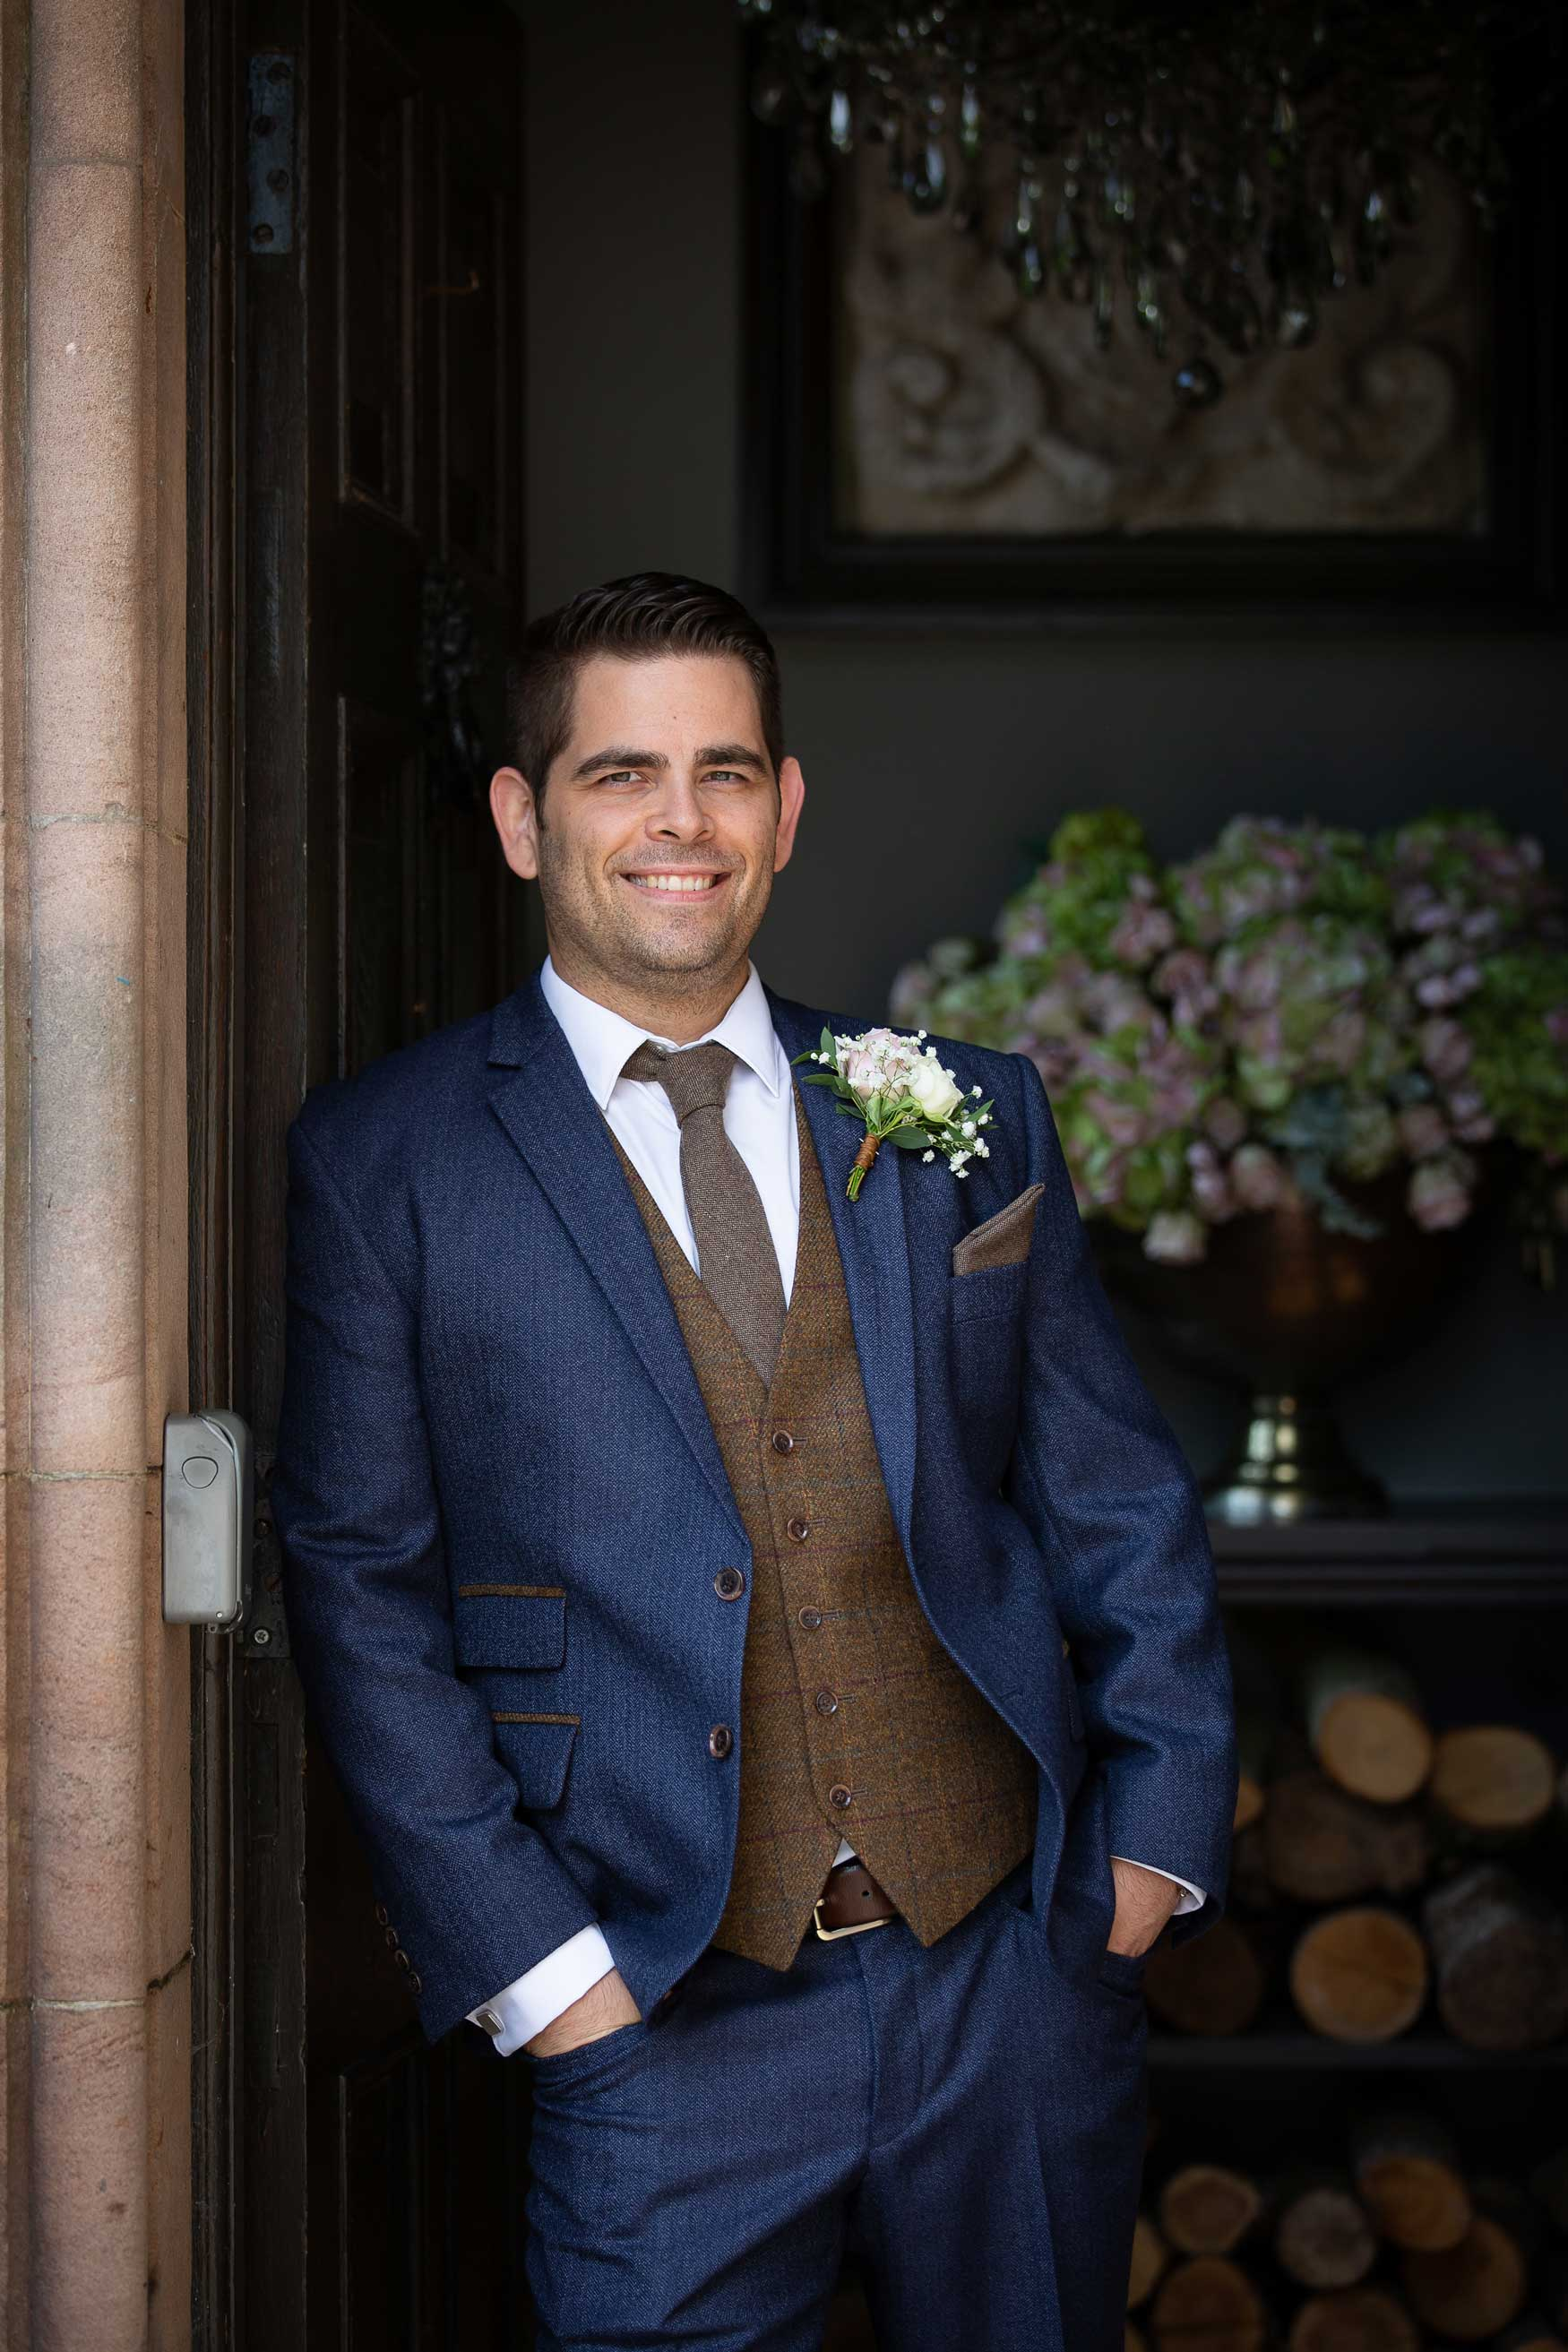 The groom standing in the door way at Ellingham hall